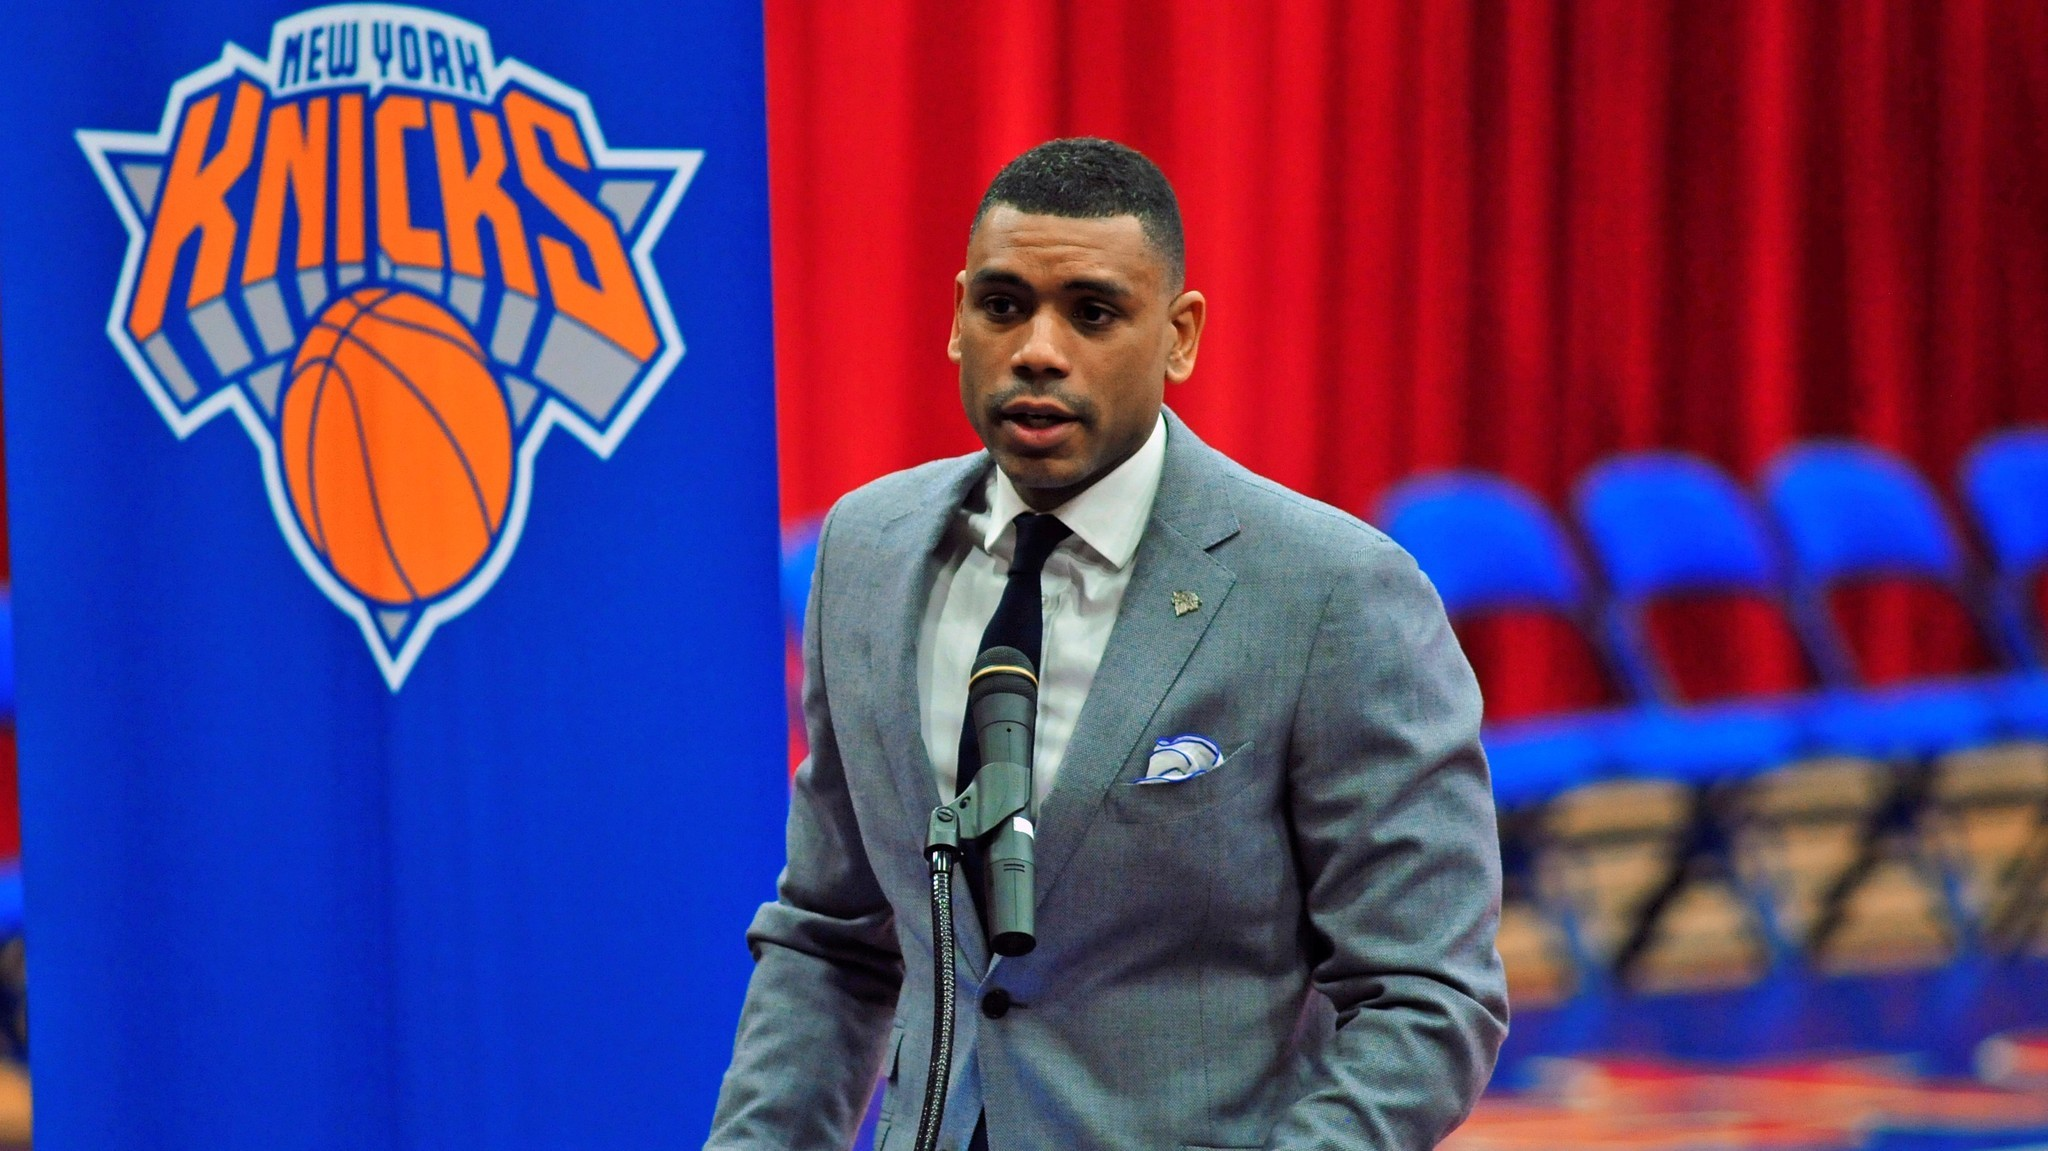 Allan Houston lining up for promotion in Knicks front office shakeup: source